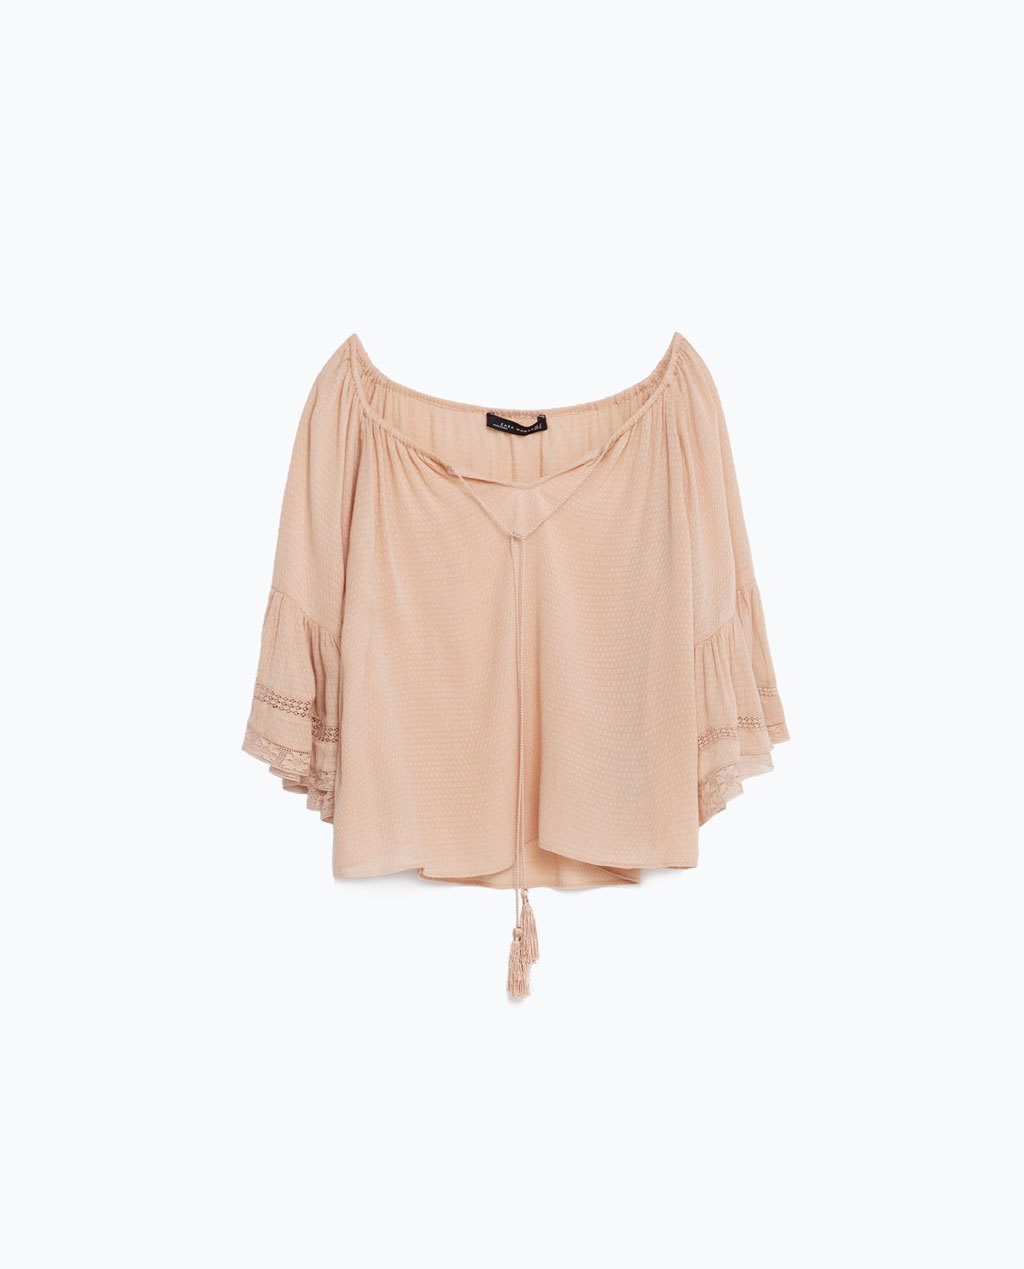 Blouse With Gathered Neckline - sleeve style: bell sleeve; pattern: plain; style: blouse; predominant colour: nude; occasions: casual; length: standard; neckline: scoop; fit: loose; sleeve length: 3/4 length; texture group: rubber/latex; pattern type: fabric; fibres: viscose/rayon - mix; season: s/s 2016; wardrobe: basic